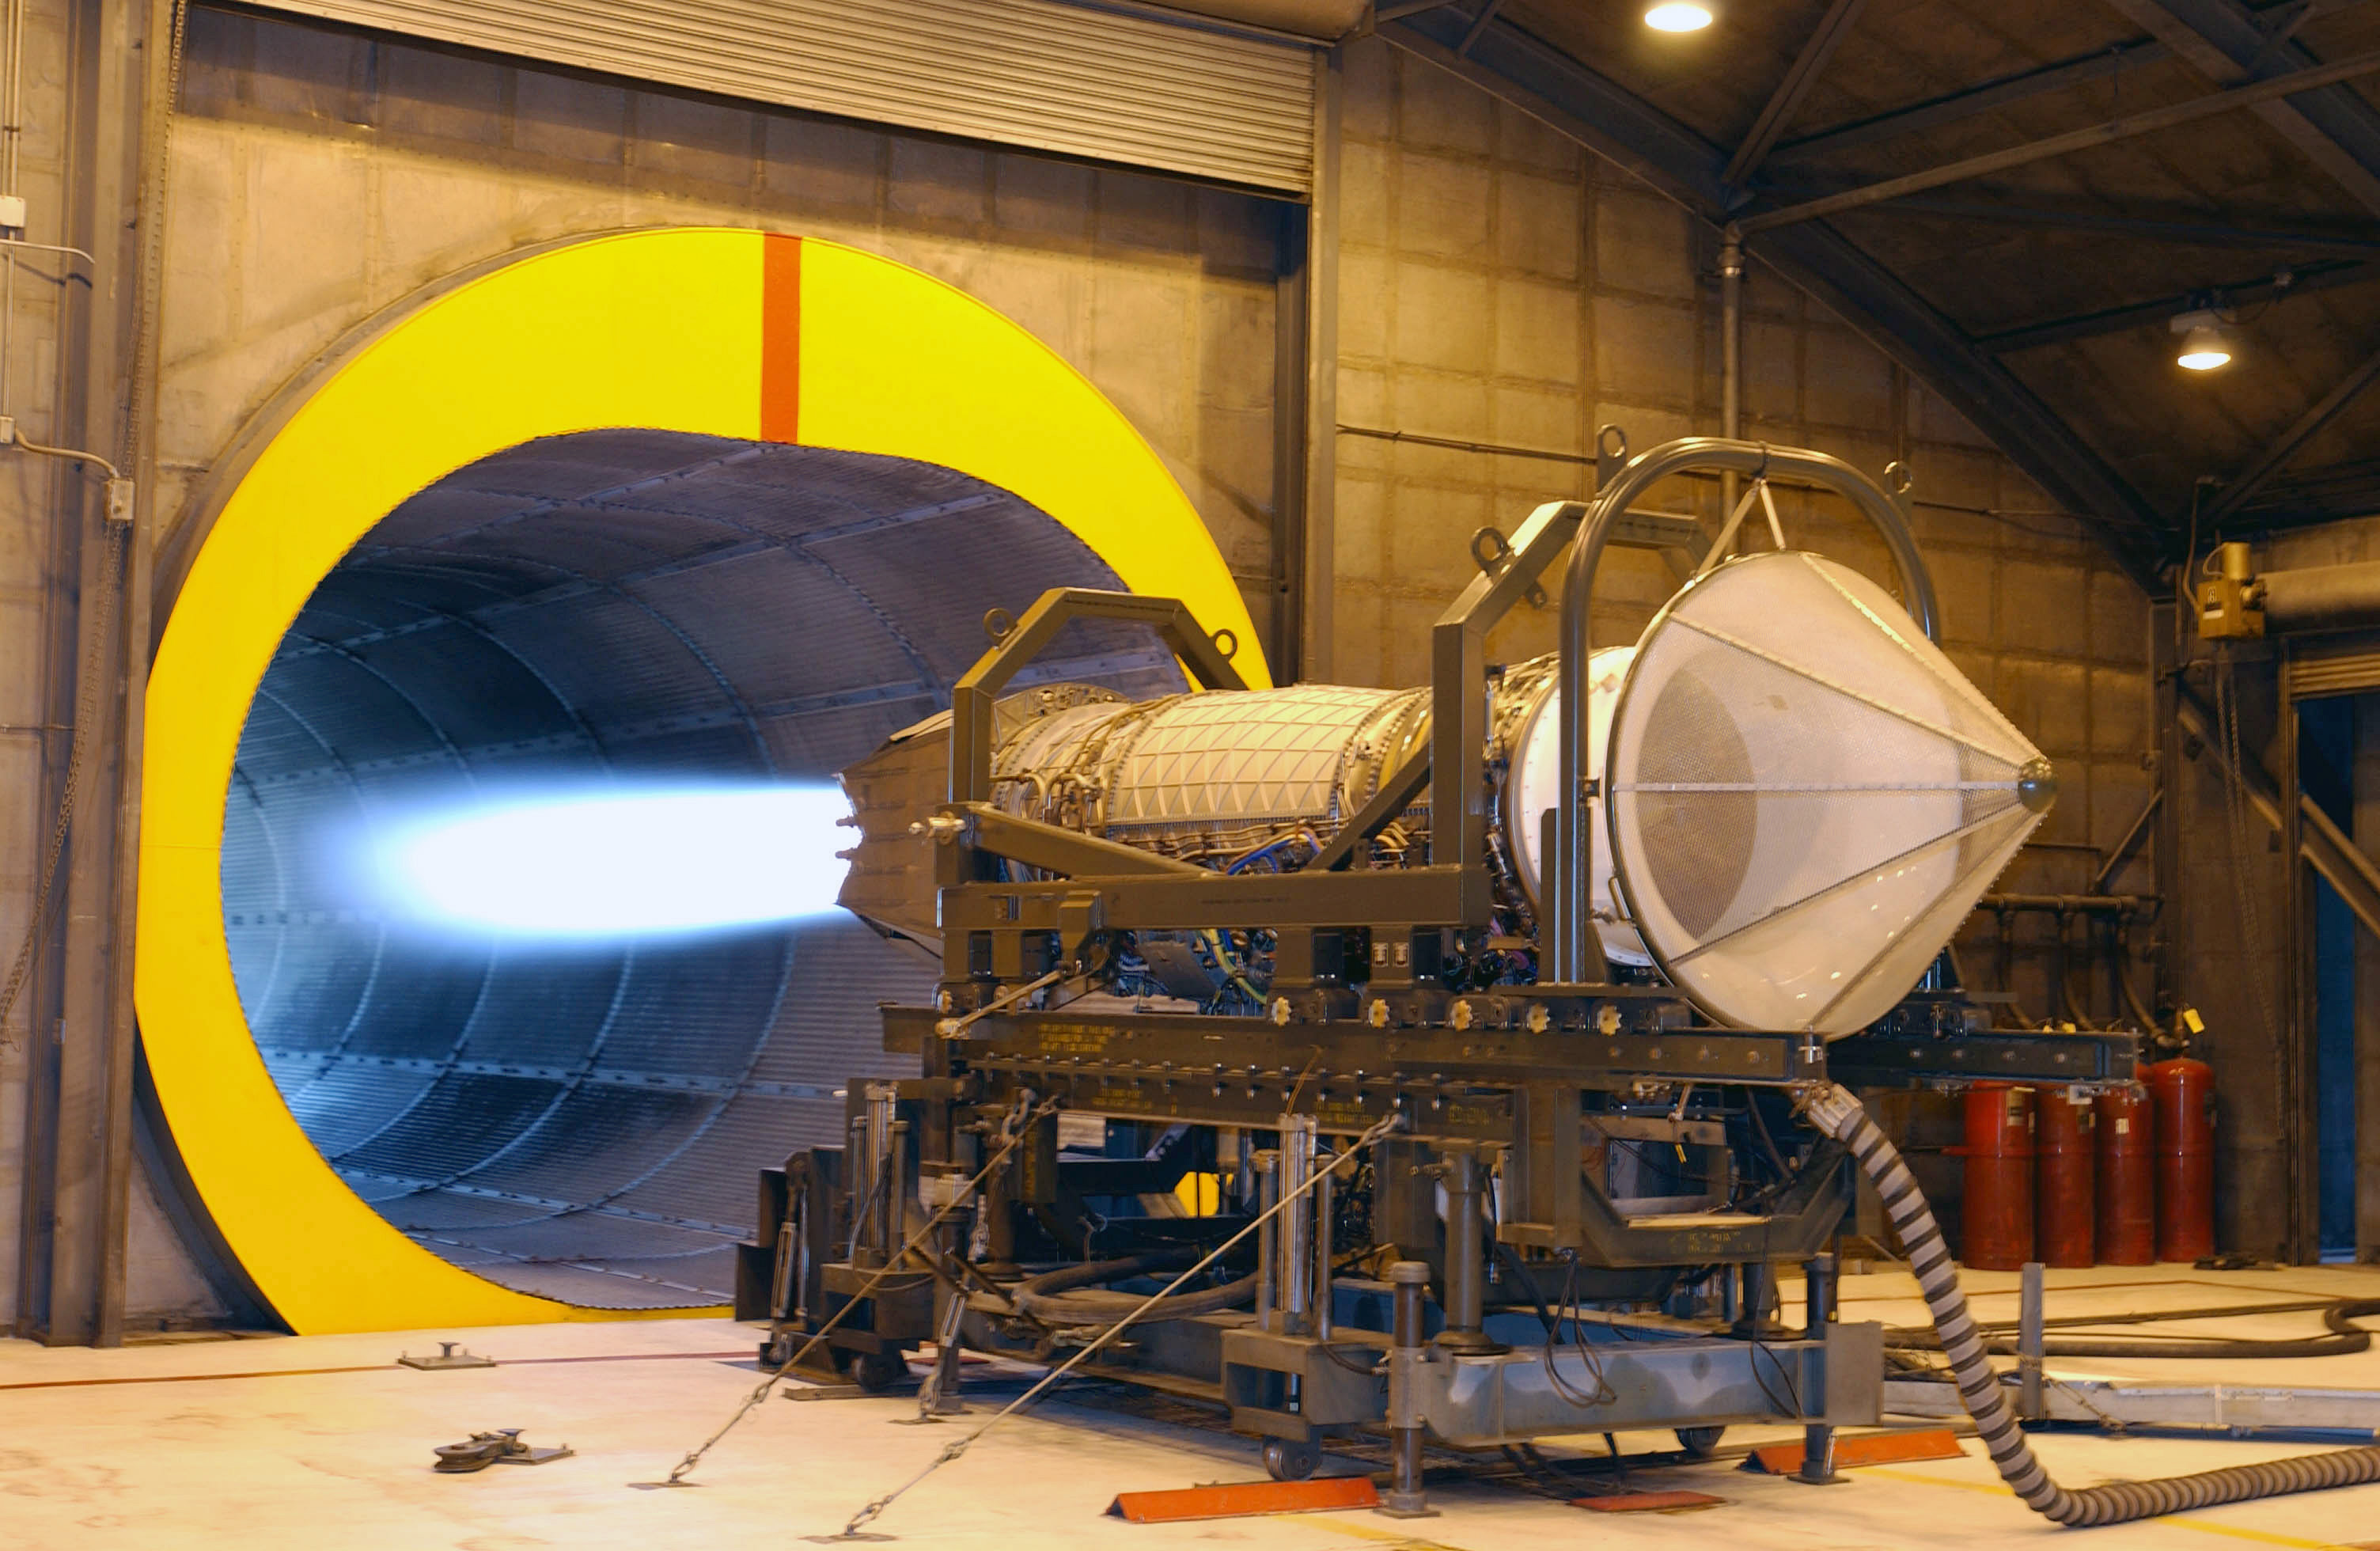 Turbofan Wikipedia Turbine Engine Diagram Gas Jet Pratt Whitney F119 Afterburning On Test Since The 1970s Most Fighter Engines